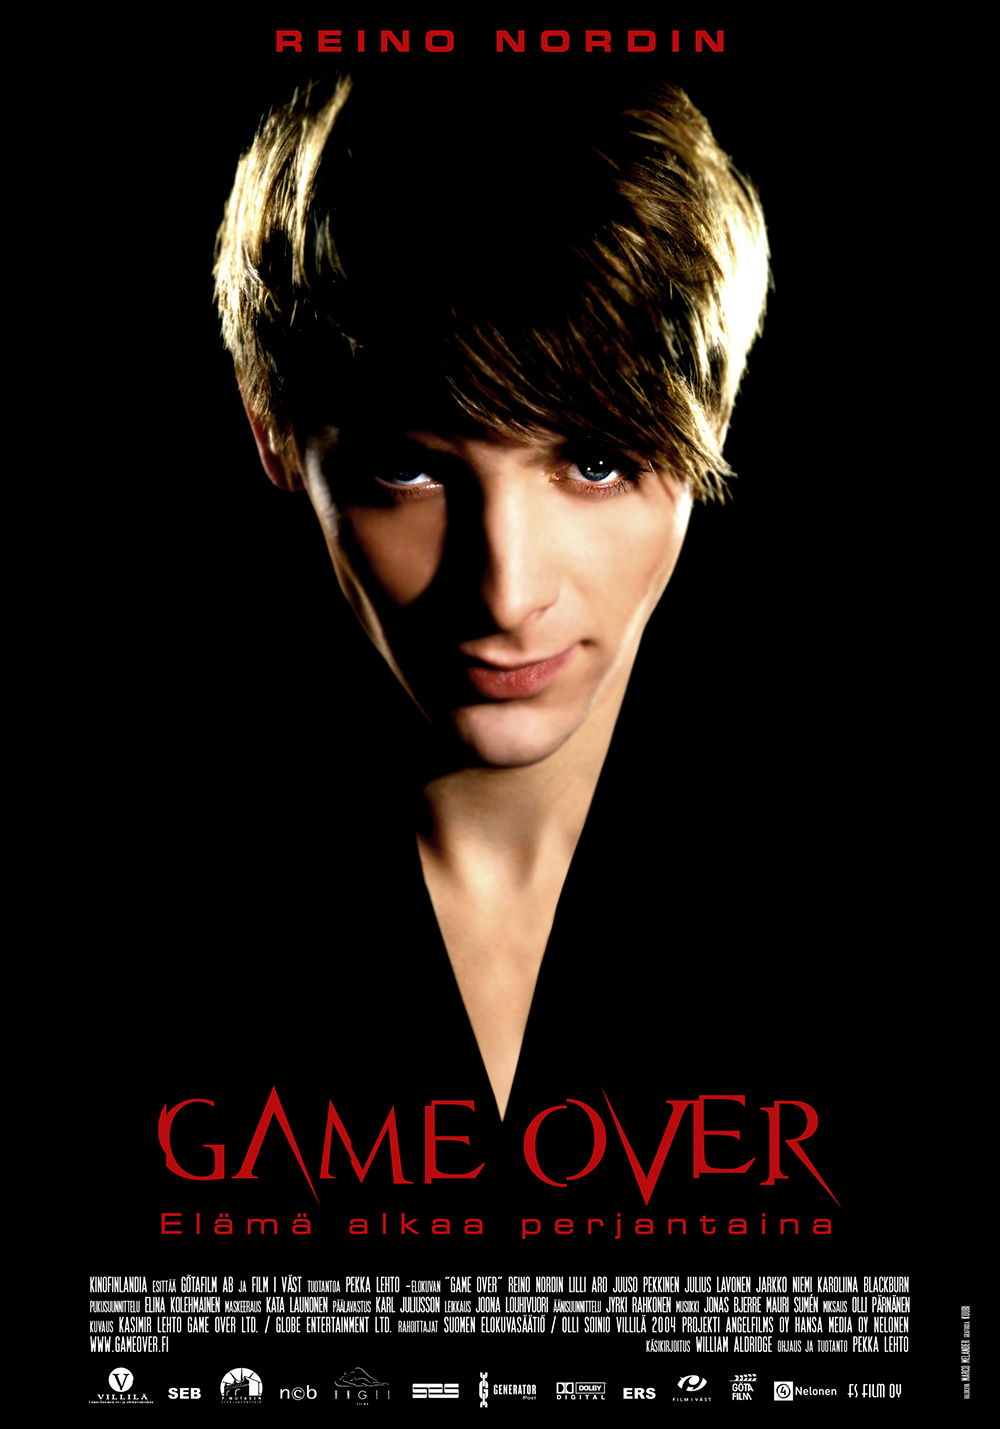 Game Over, directed by Pekka Lehto